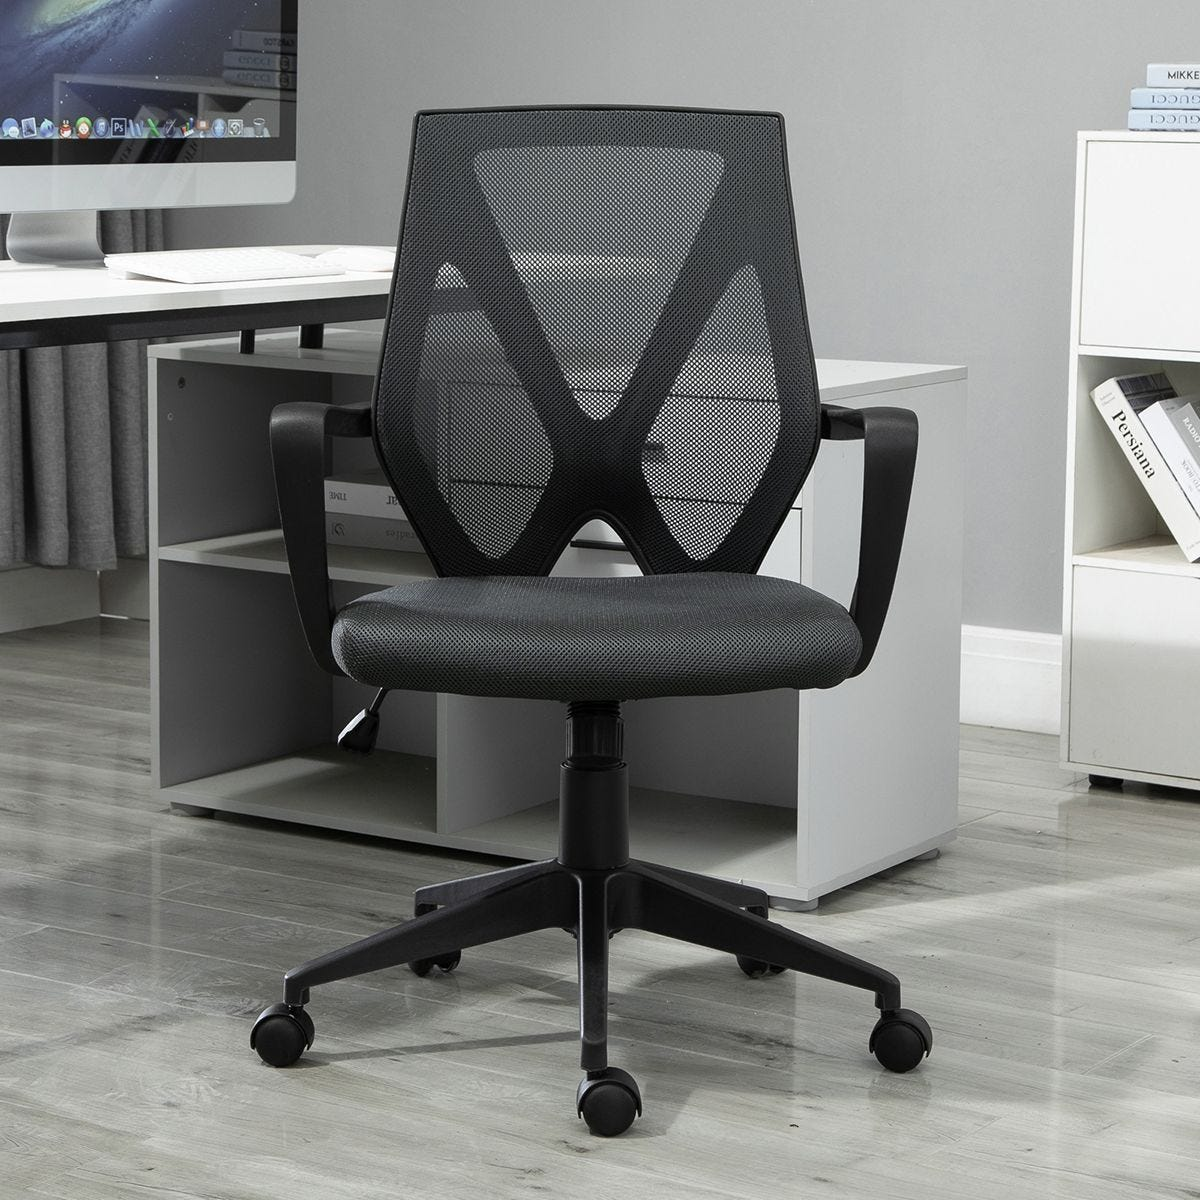 Ergonomic Mesh Office Chair Adjustable Height Padded Seat Armrests 5 Wheels Grey